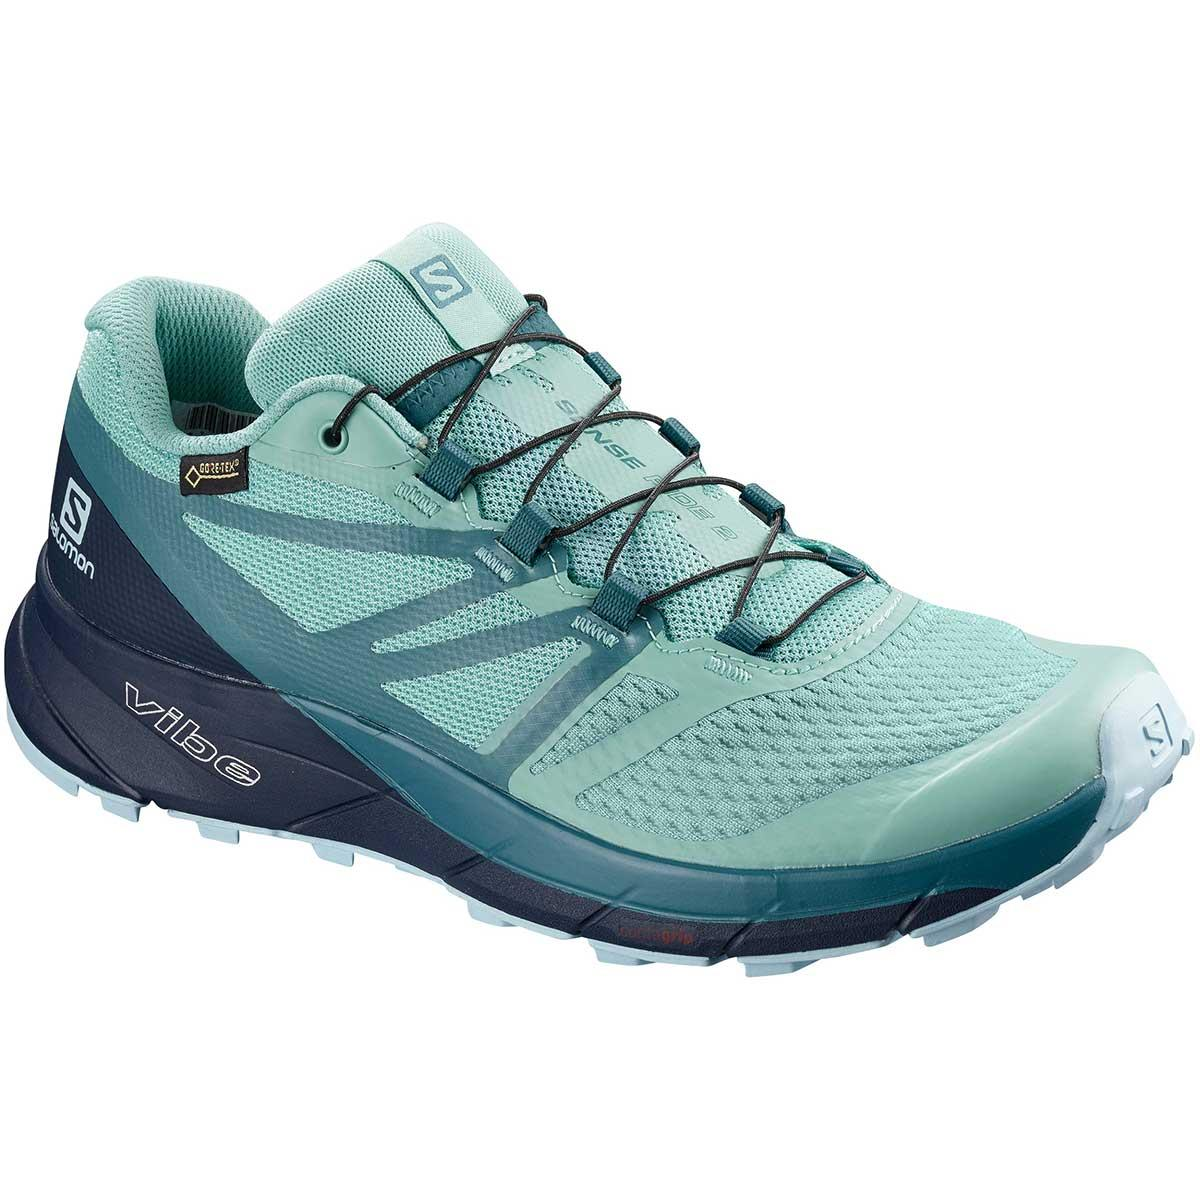 Salomon Sense Ride 2 GTX Invisible Fit W in Nile Blue and Navy Blazer and Mallard Blue